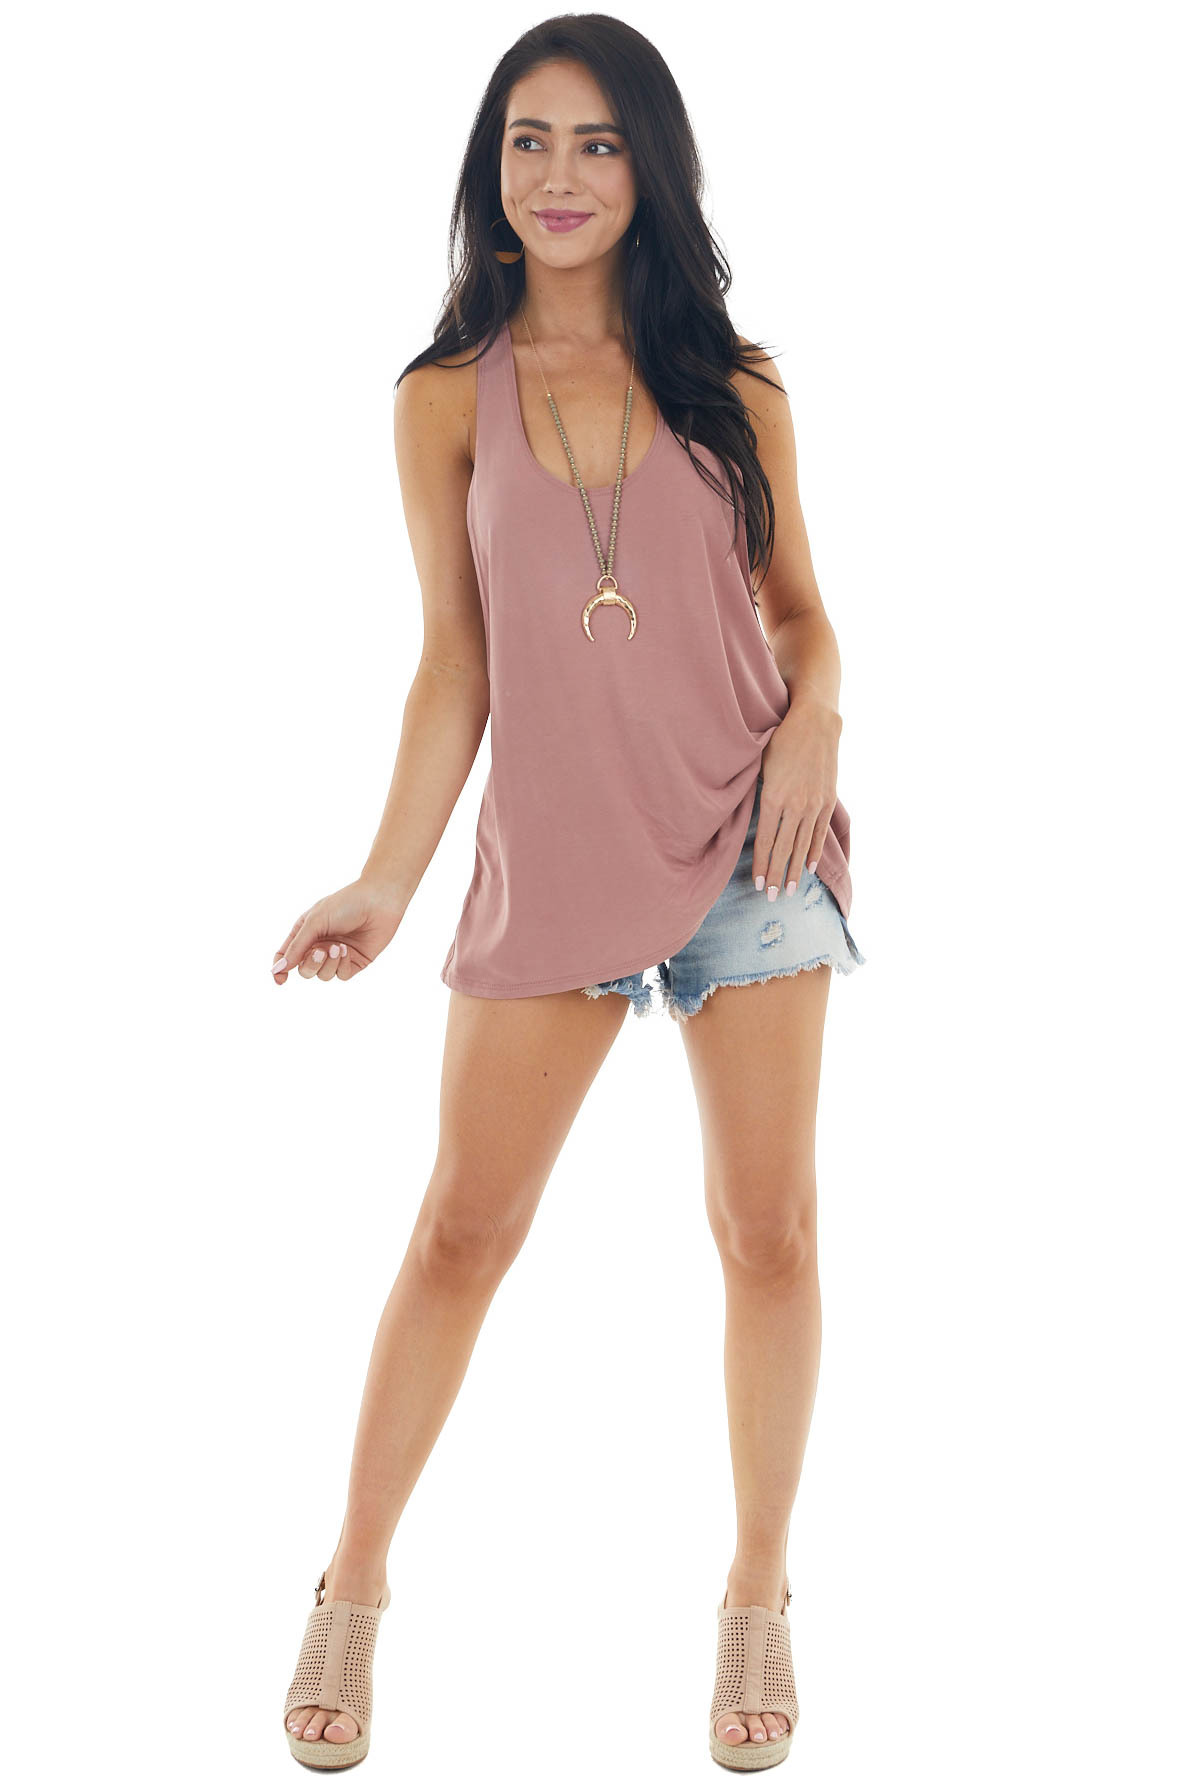 Dusty Rose Sleeveless Tank Top with Braided Racerback Detail